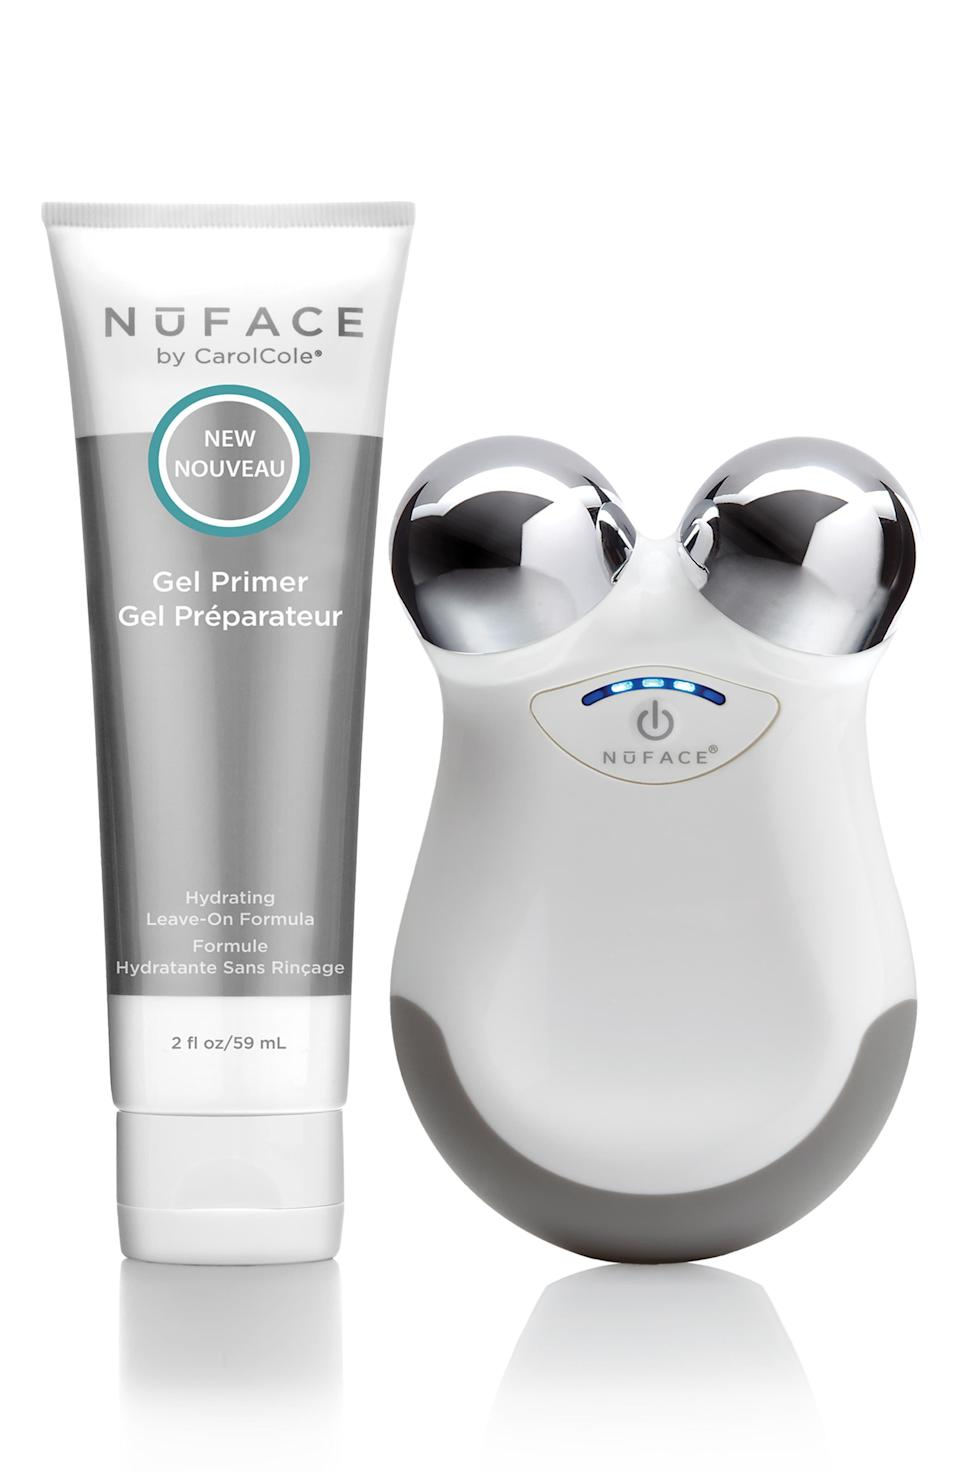 """<h3><strong>NuFace</strong> Mini Facial Toning Device</h3><br><br>Just in case your dad wants a touch-up between his Botox appointments — yes, <a href=""""https://www.refinery29.com/en-us/male-plastic-surgery-stories"""" rel=""""nofollow noopener"""" target=""""_blank"""" data-ylk=""""slk:dads get injectables"""" class=""""link rapid-noclick-resp"""">dads get injectables</a>, too — there's this face-lifting micro-current tool. It's so no-fuss that he can do it while he lays in bed and watches another <em>Law & Order: Special Victims Unit</em> rerun.<br><br><strong>NuFACE</strong> mini Facial Toning Device, $, available at <a href=""""https://go.skimresources.com/?id=30283X879131&url=https%3A%2F%2Fshop.nordstrom.com%2Fs%2Fnuface-mini-facial-toning-device%2F5254718%3Forigin%3Dcategory-personalizedsort%26breadcrumb%3DHome%252FMen%252FGrooming%2520%2526%2520Cologne%252FGifts%2520%2526%2520Sets%26color%3Dwhite"""" rel=""""nofollow noopener"""" target=""""_blank"""" data-ylk=""""slk:Nordstrom"""" class=""""link rapid-noclick-resp"""">Nordstrom</a>"""